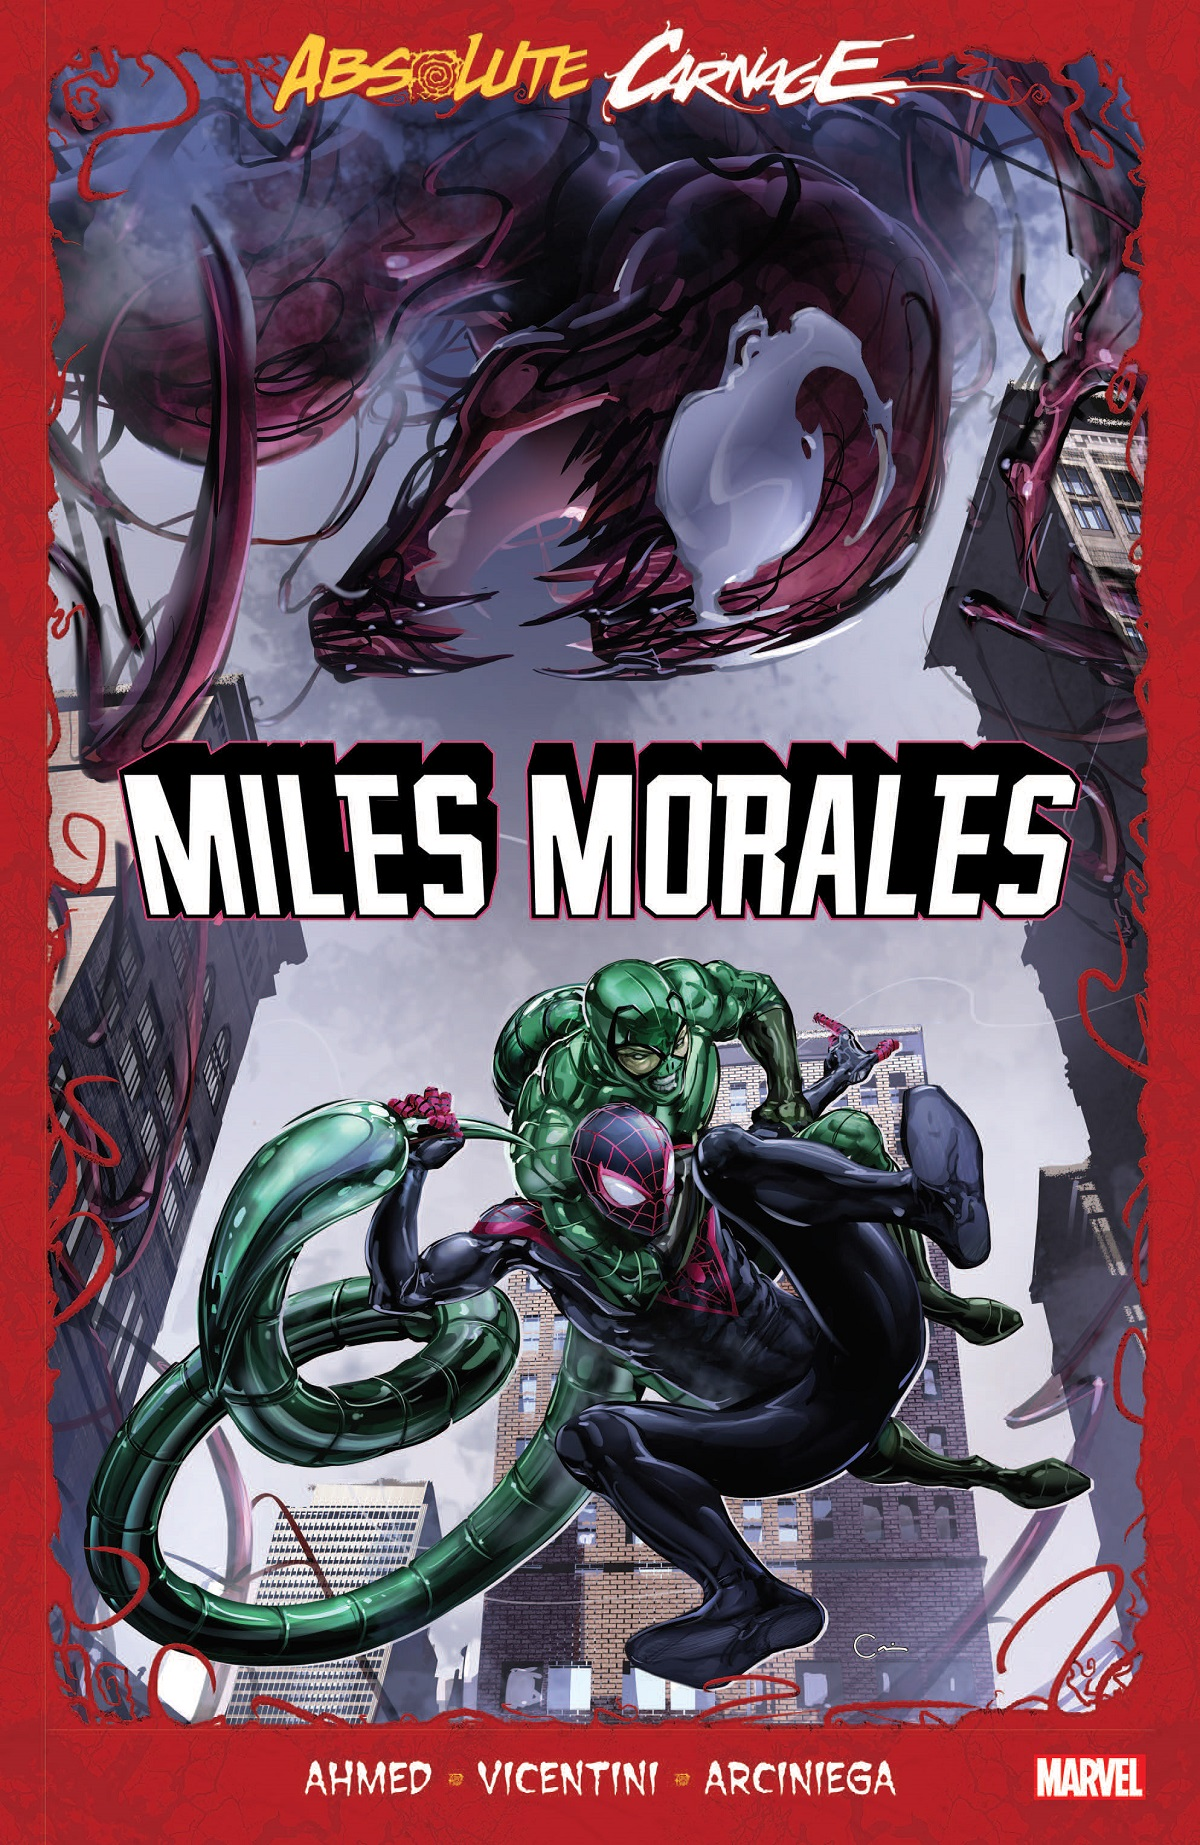 Absolute Carnage: Miles Morales (Trade Paperback)